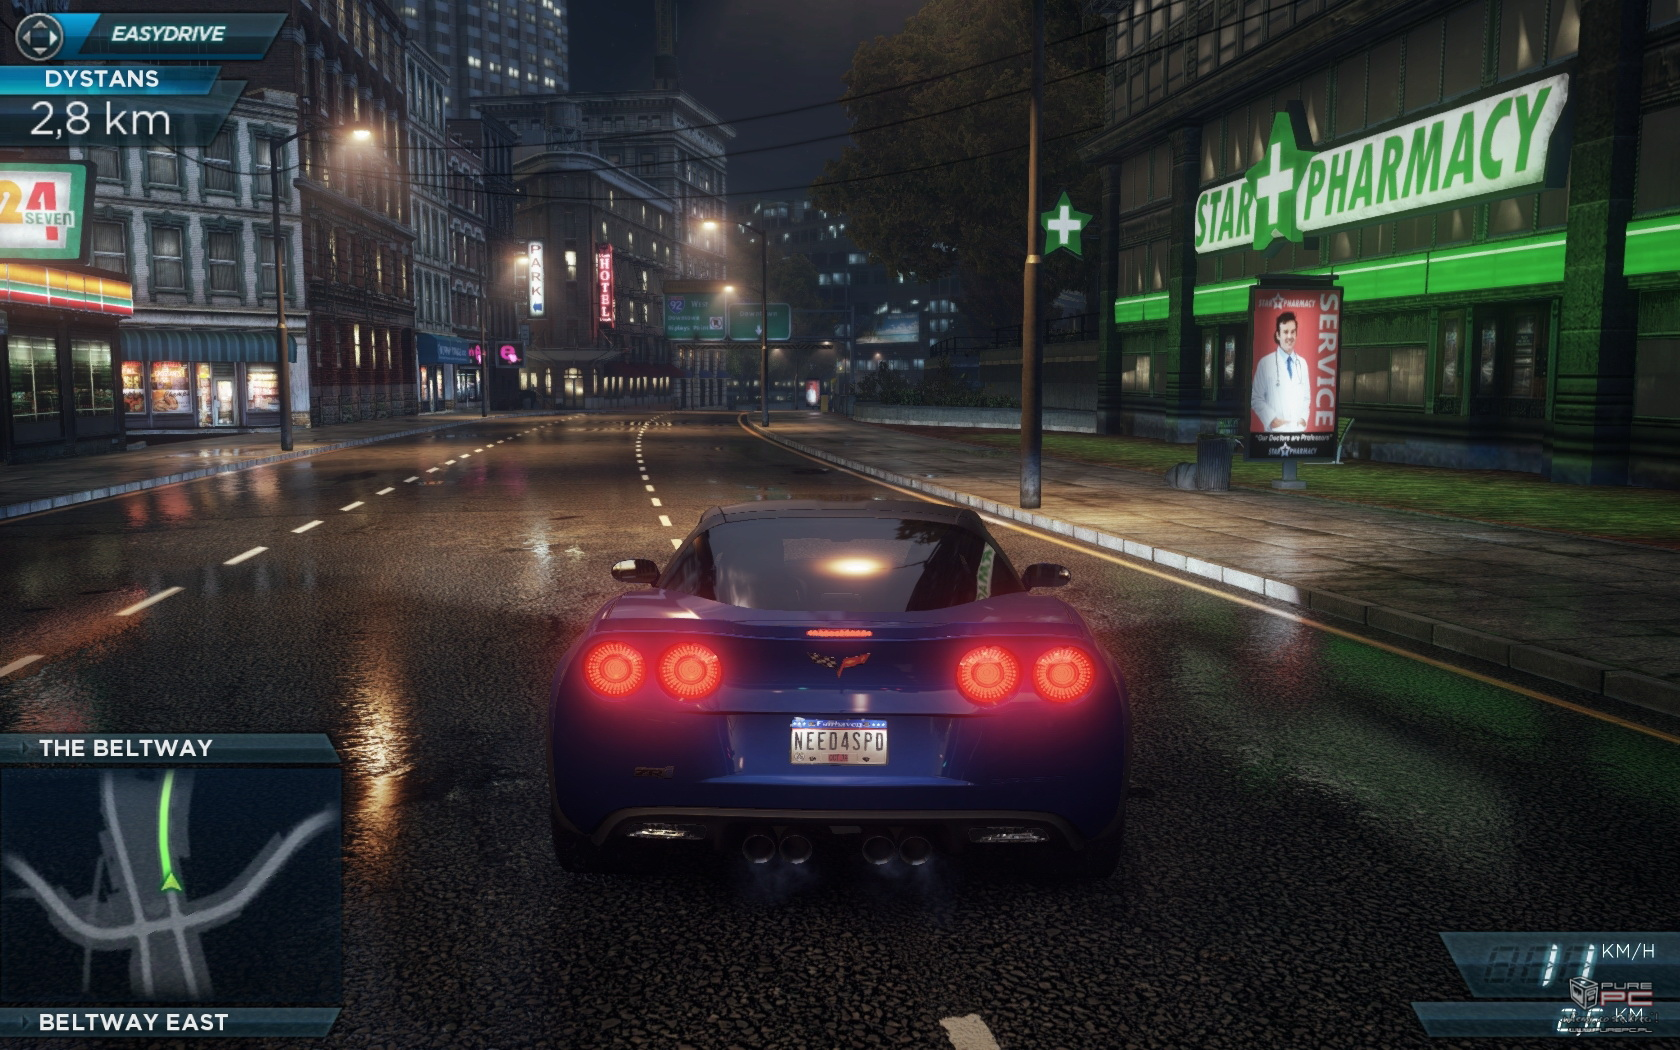 nfs_most_wanted_screen_review_test_37.jpg